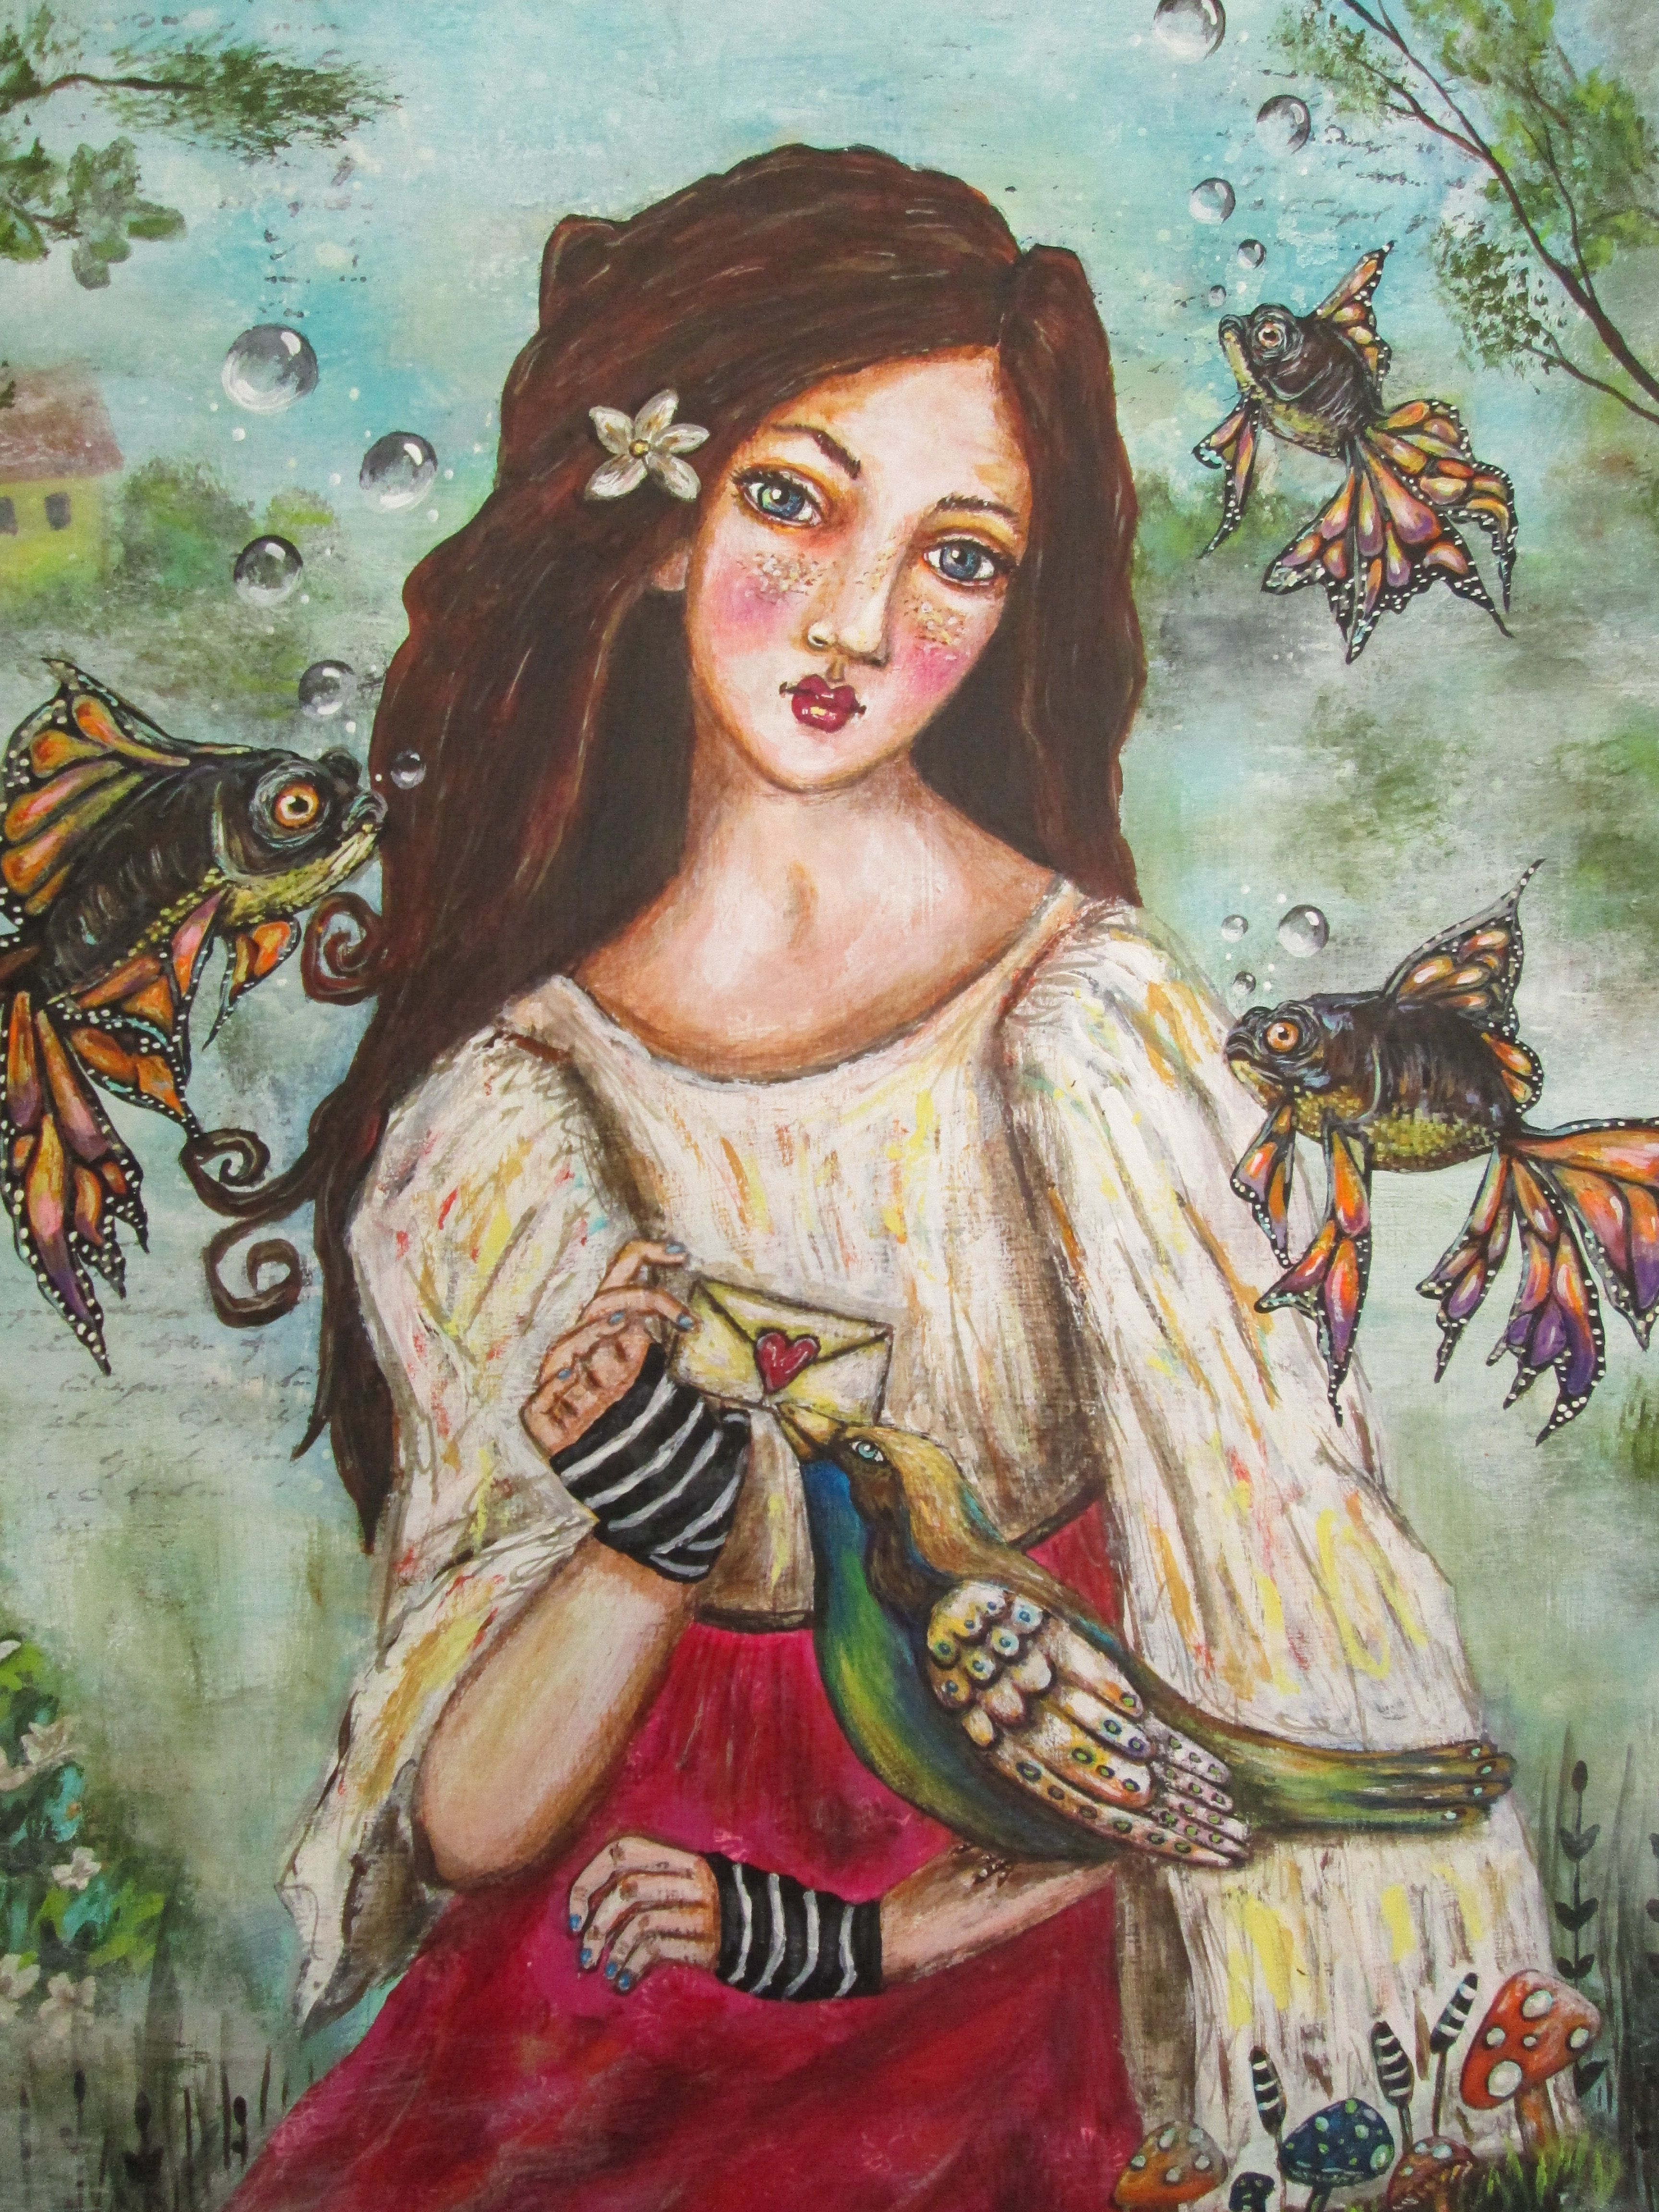 Artist; Shannon Nicole  Title: This Love has got a hold on me Whimsical Art Painting Available for sale on Ebay. http://www.ebay.com/itm/271753538590?ssPageName=STRK:MESELX:IT&_trksid=p3984.m1555.l2649